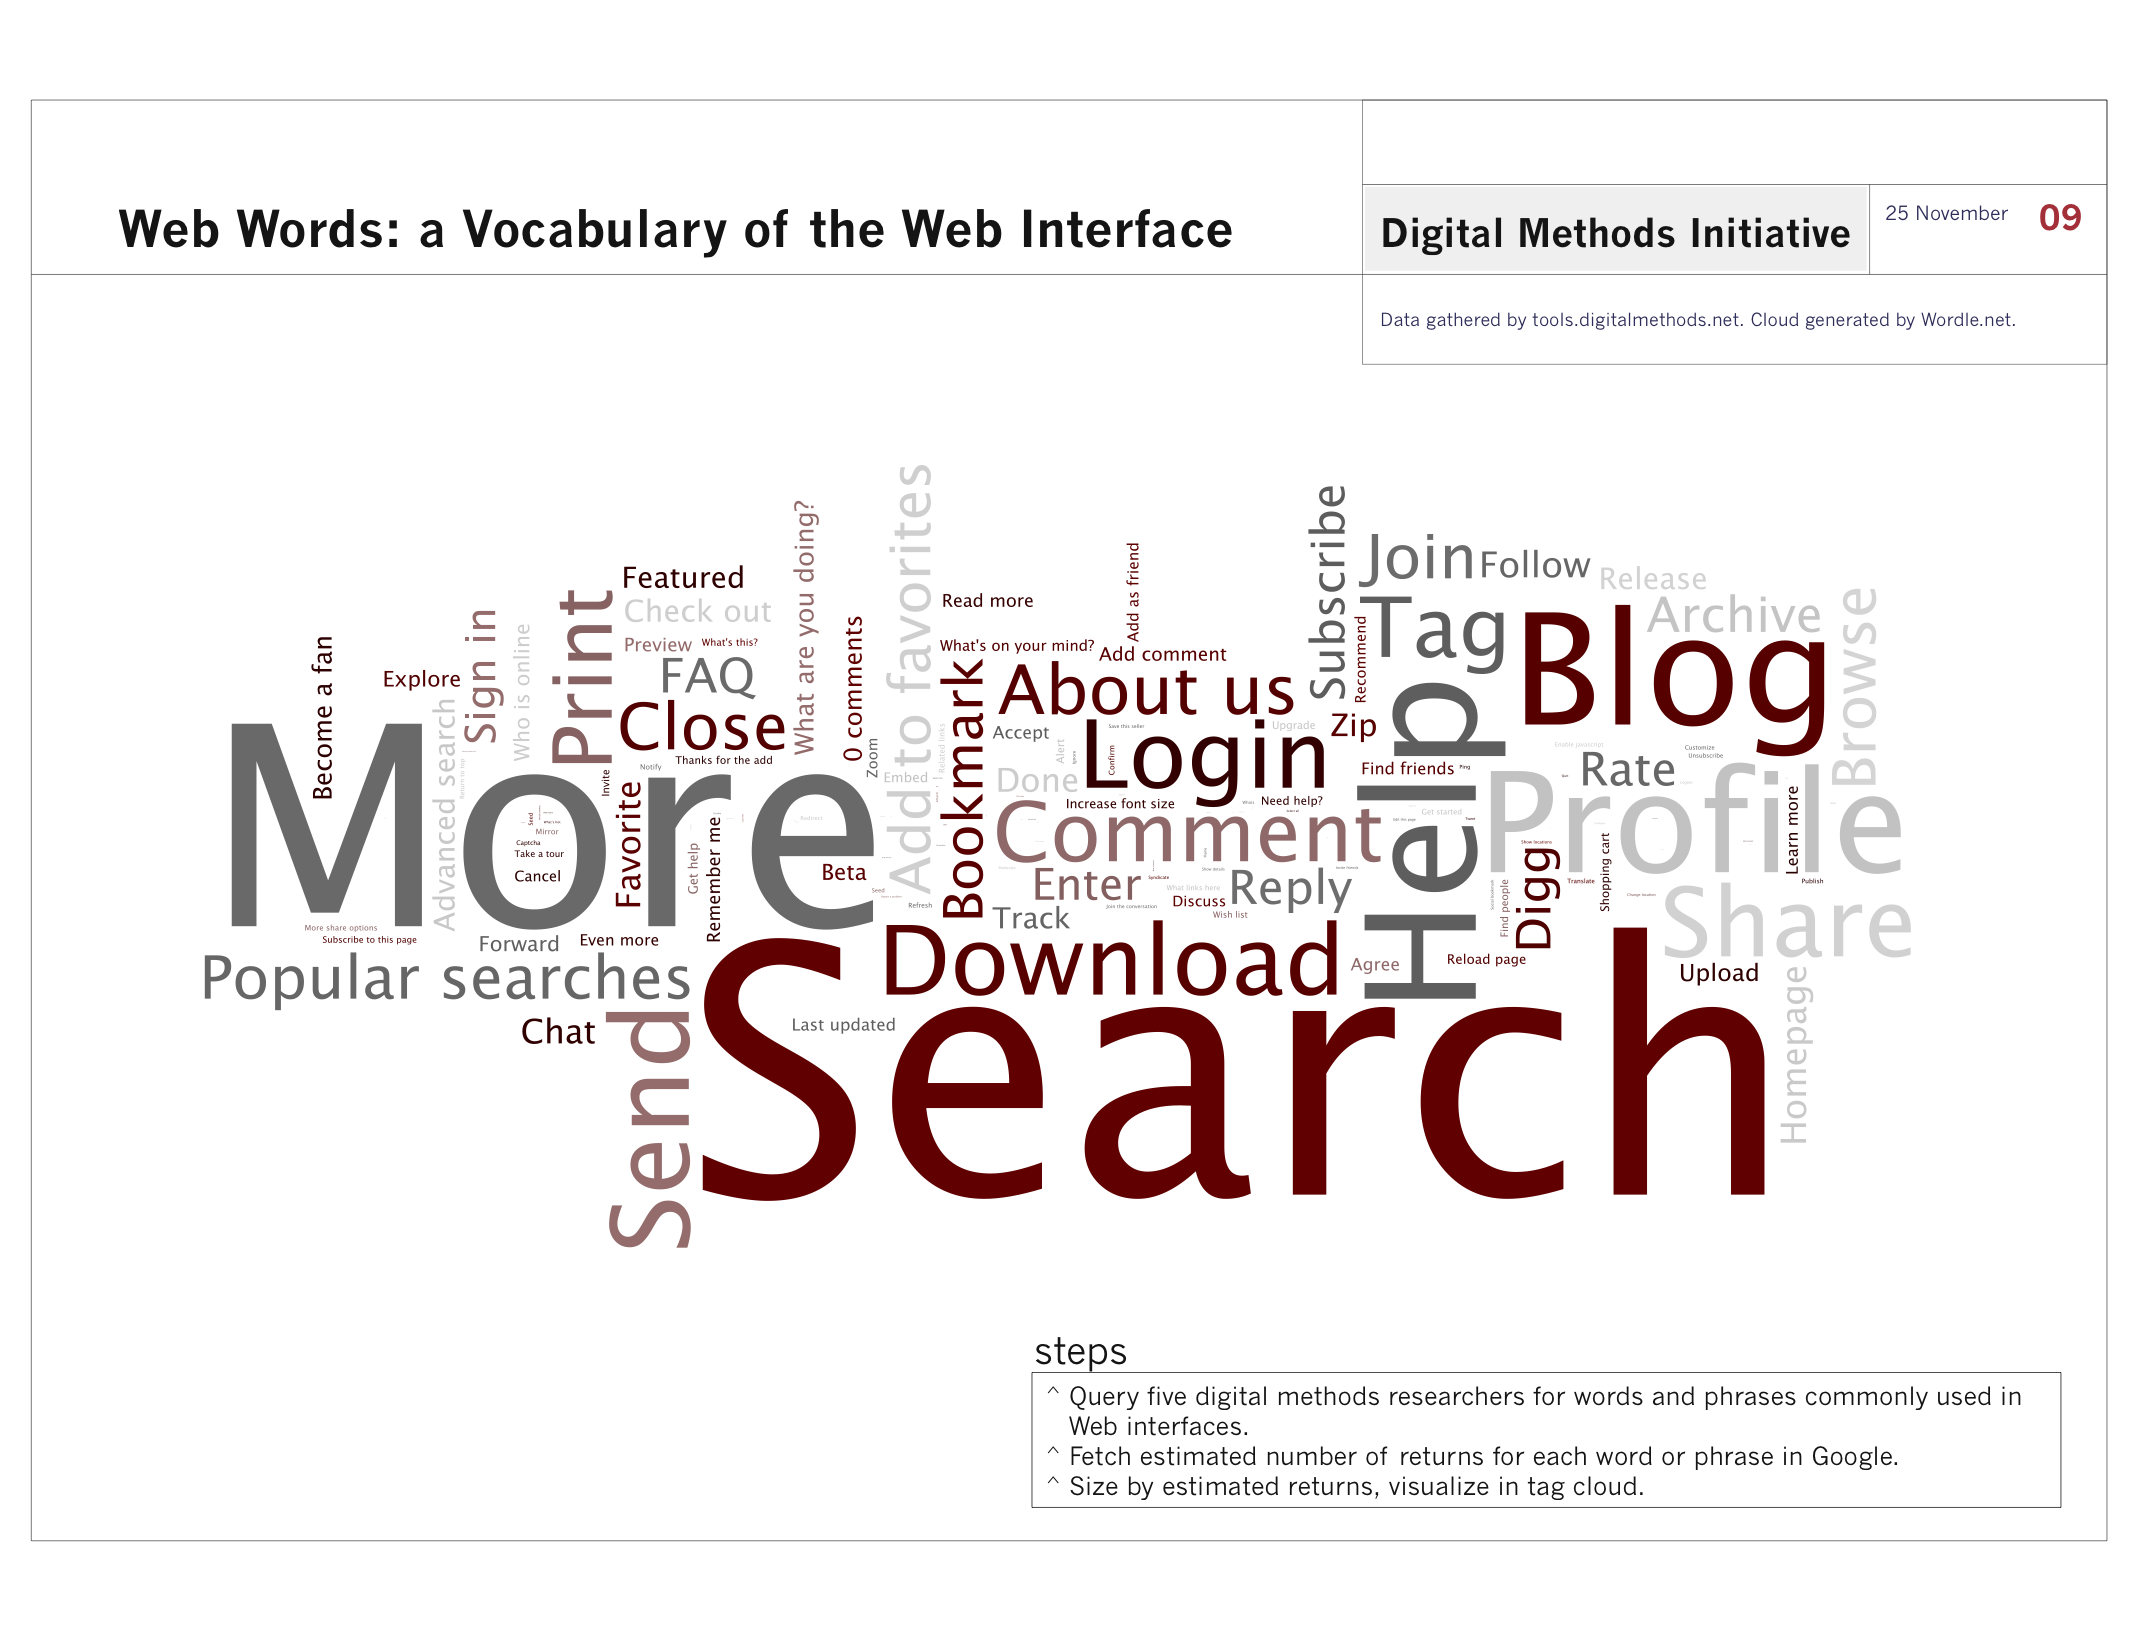 Web_Words_Digital_Methods_Initiative_November09.png